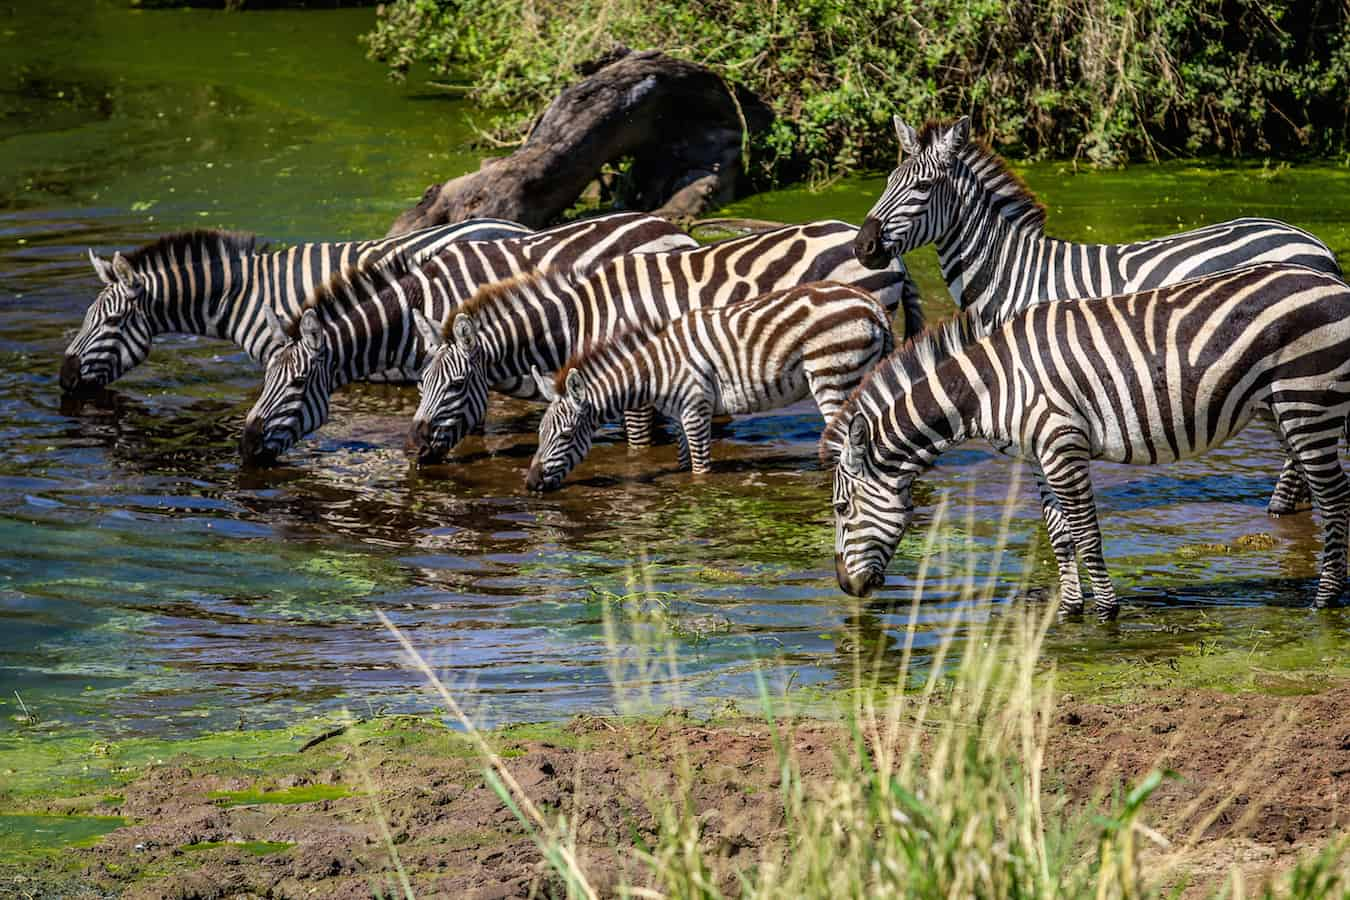 Nervous Zebras at a Watering Hole in Serengeti National Park